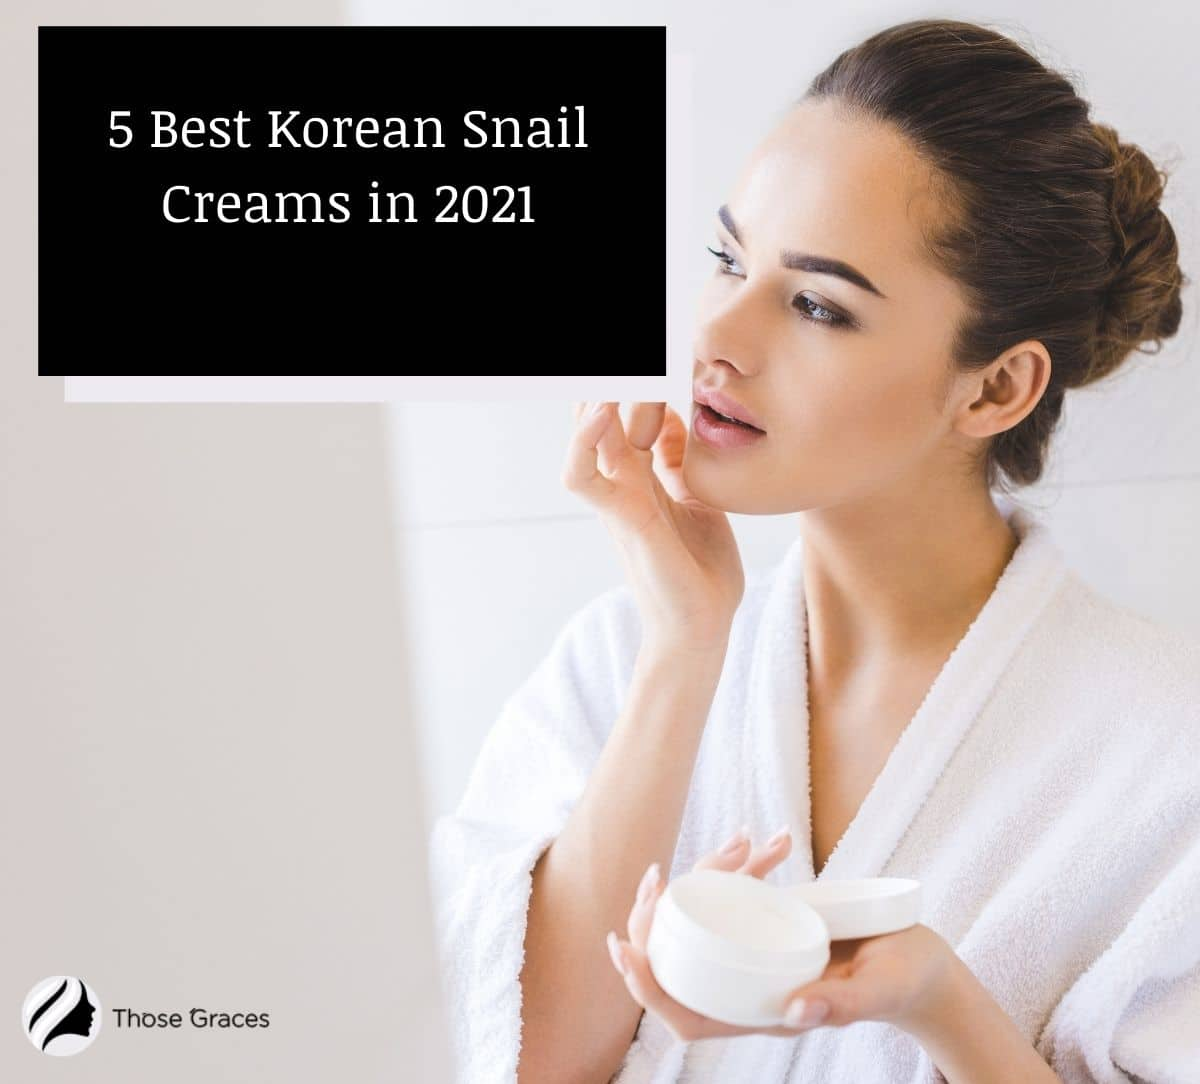 a pretty lady in robe putting a Korean snail cream on her face